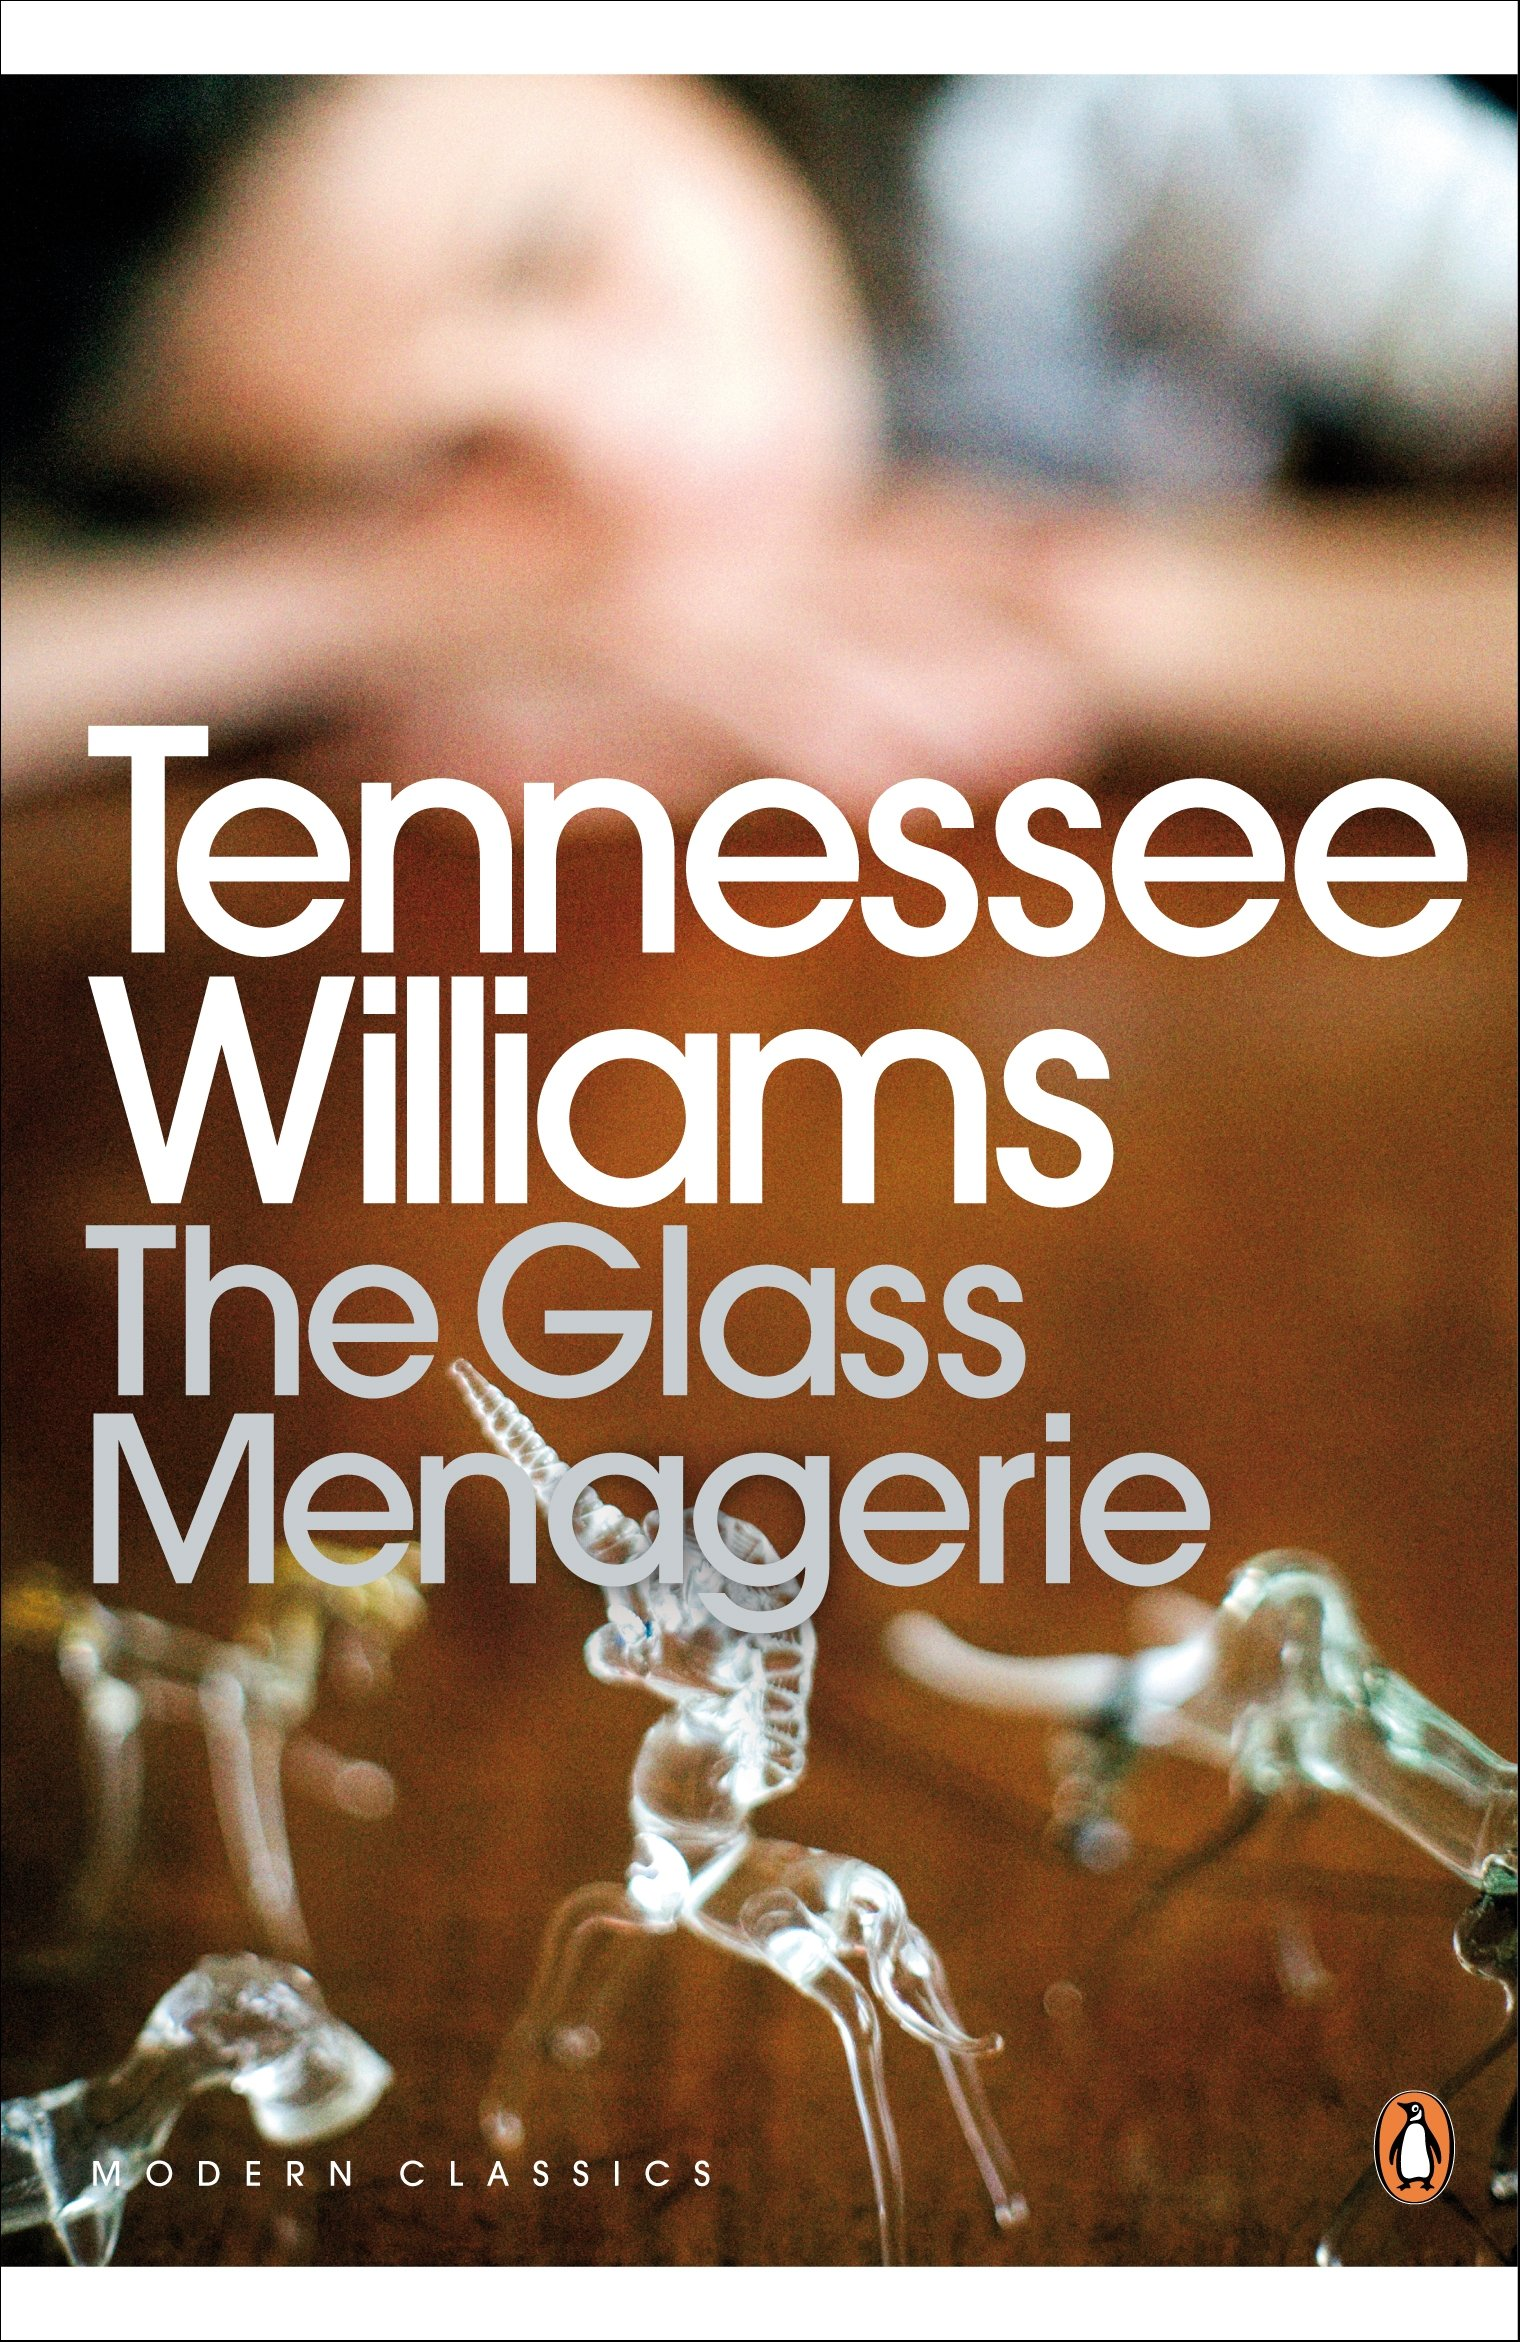 glass menagerie essay the glass menagerie penguin modern classics  the glass menagerie penguin modern classics de e the glass menagerie penguin modern classics de e